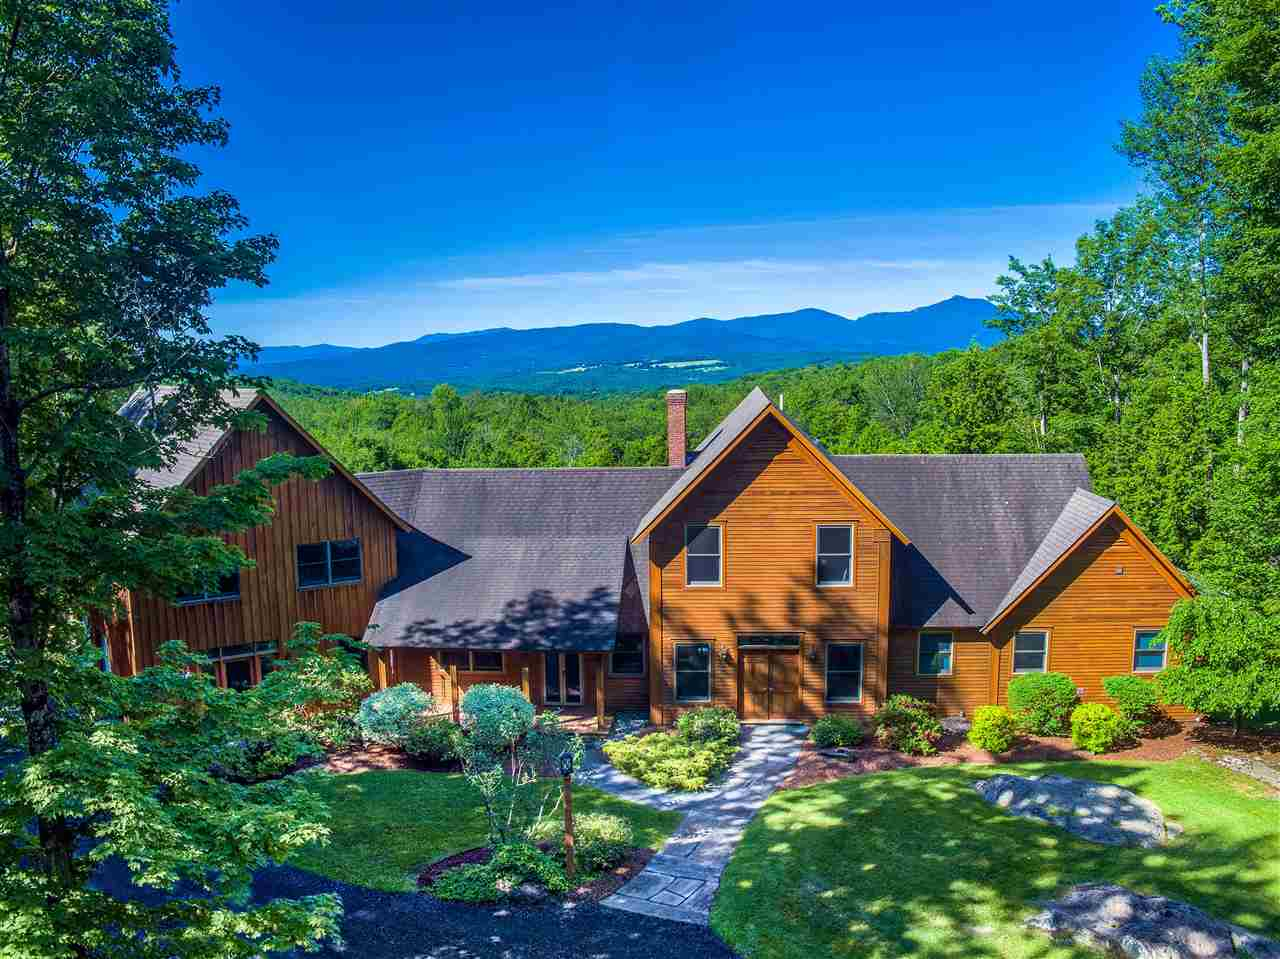 4702774 - 1015 South Hollow Road Stowe VT, 05672